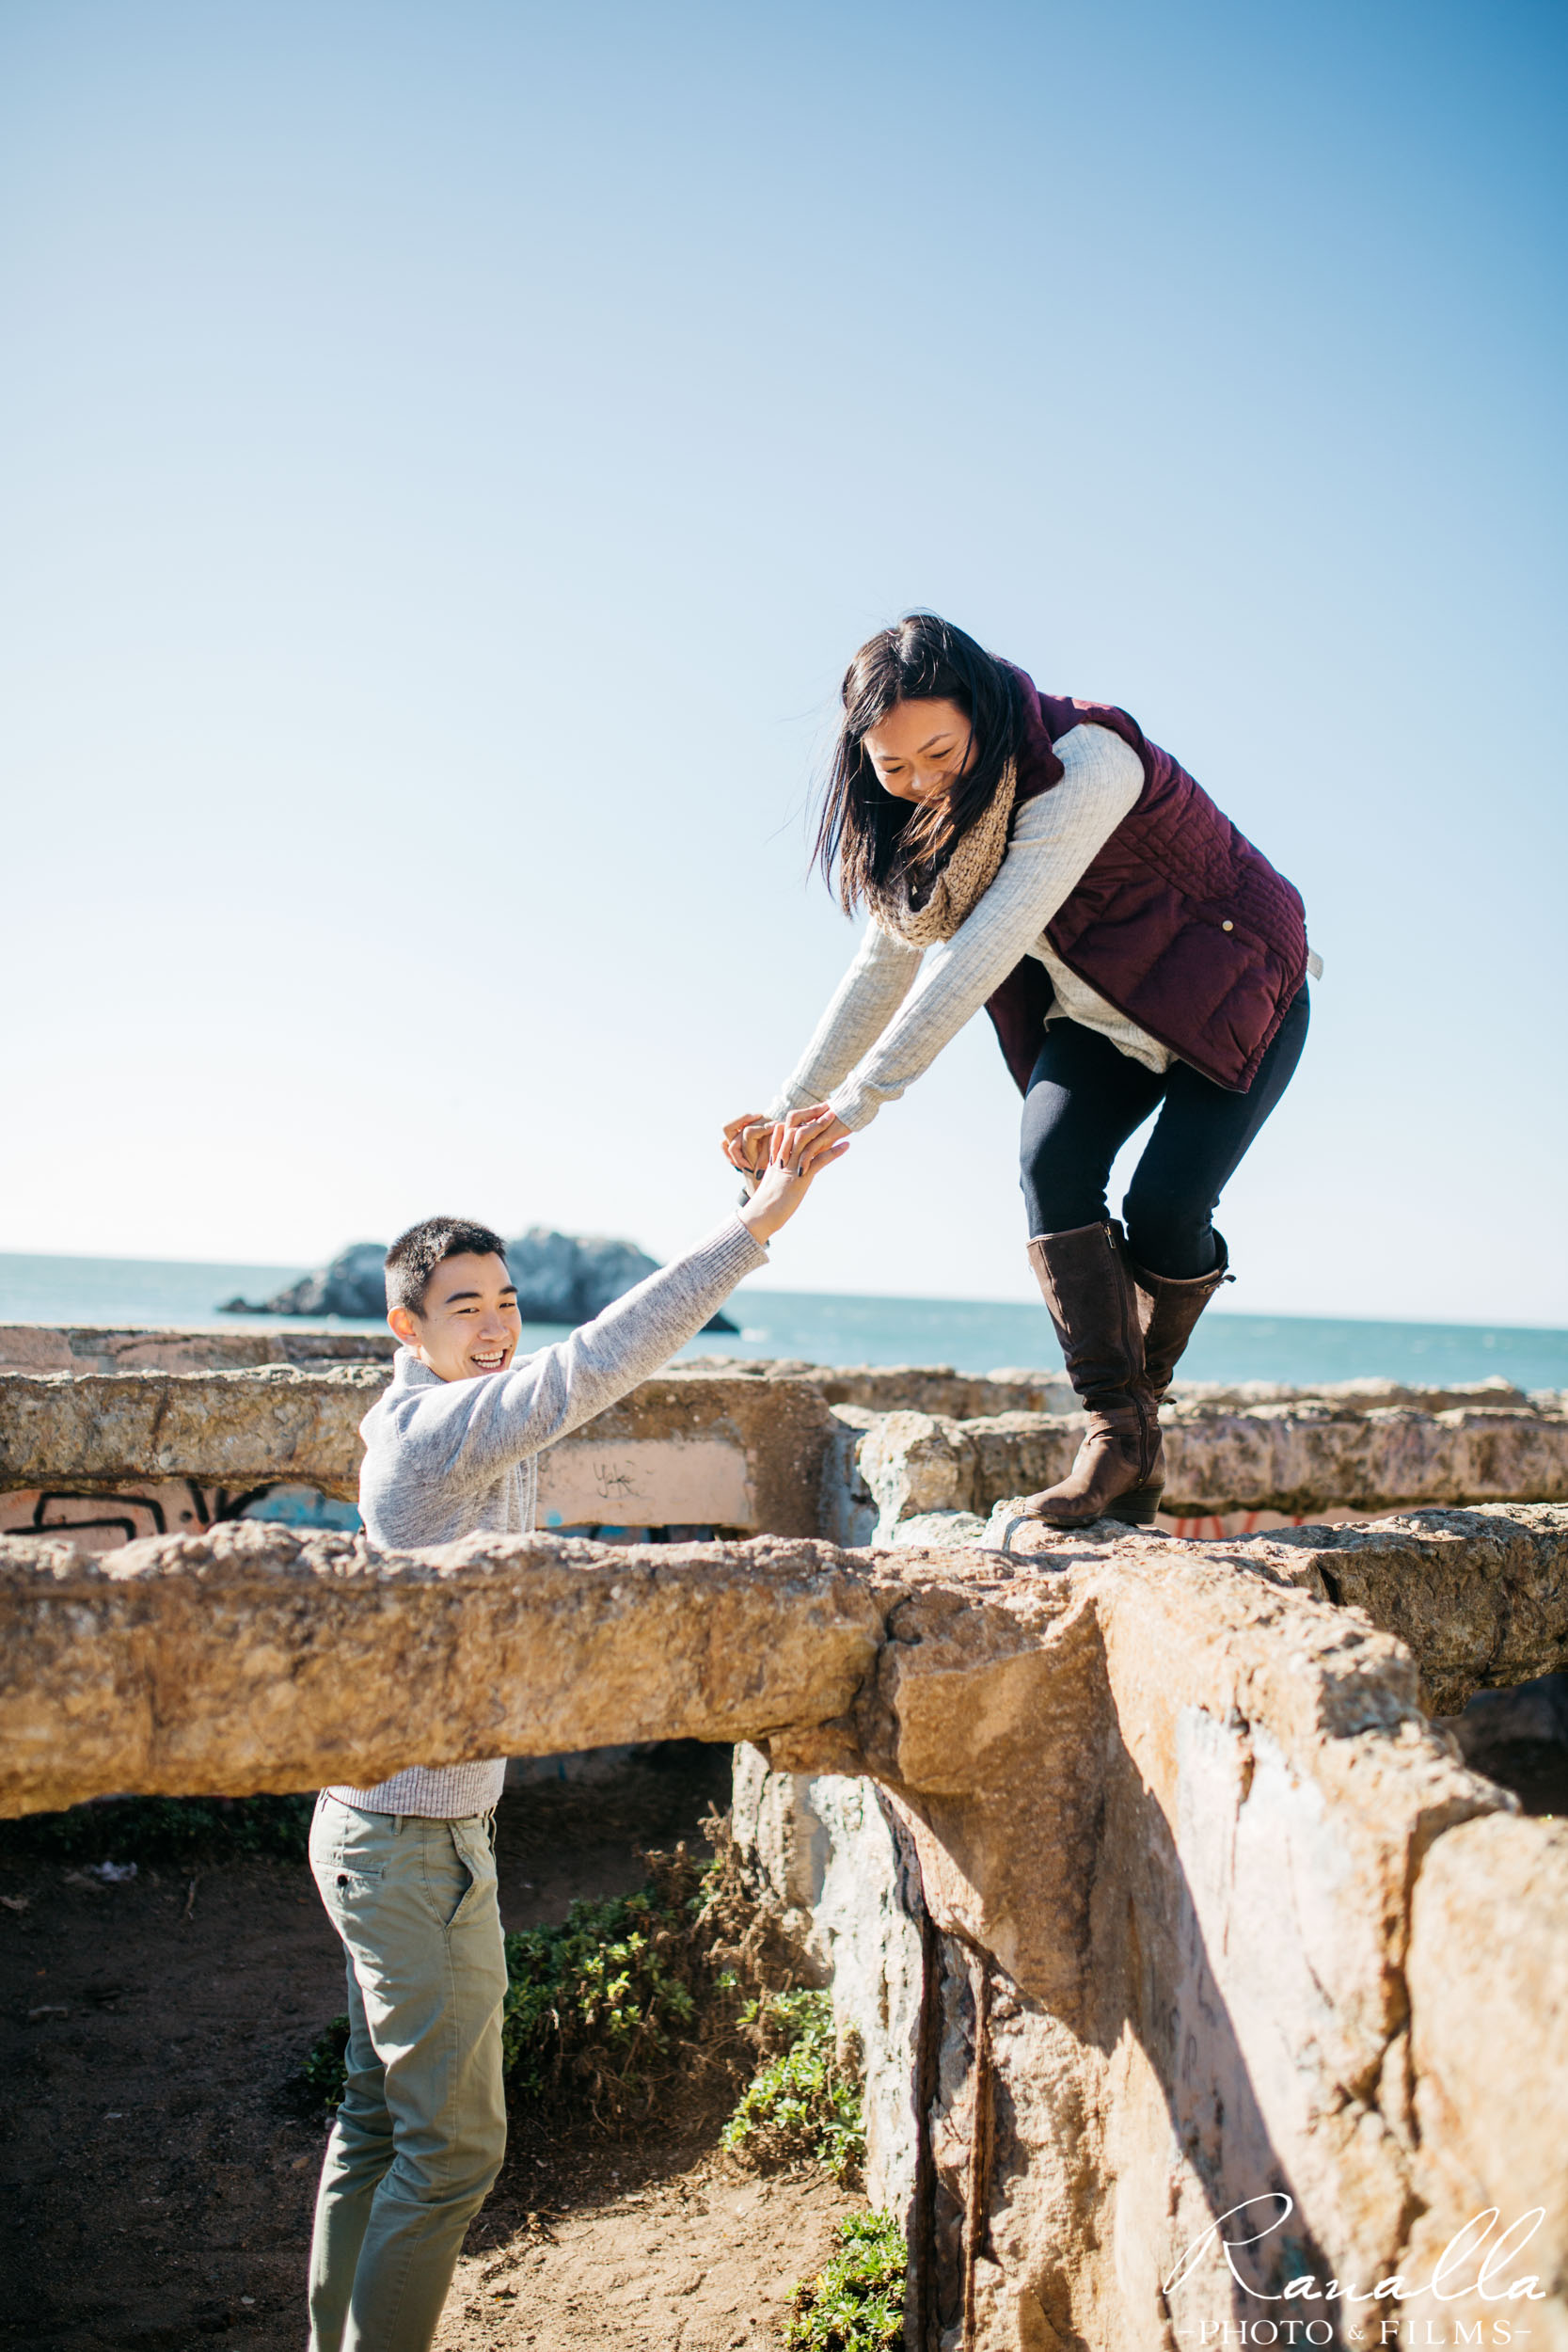 San Francisco Engagement Photography- Sutro Baths- Engaged Couple- Lands End Wedding Photos- Ranalla Photo & Films